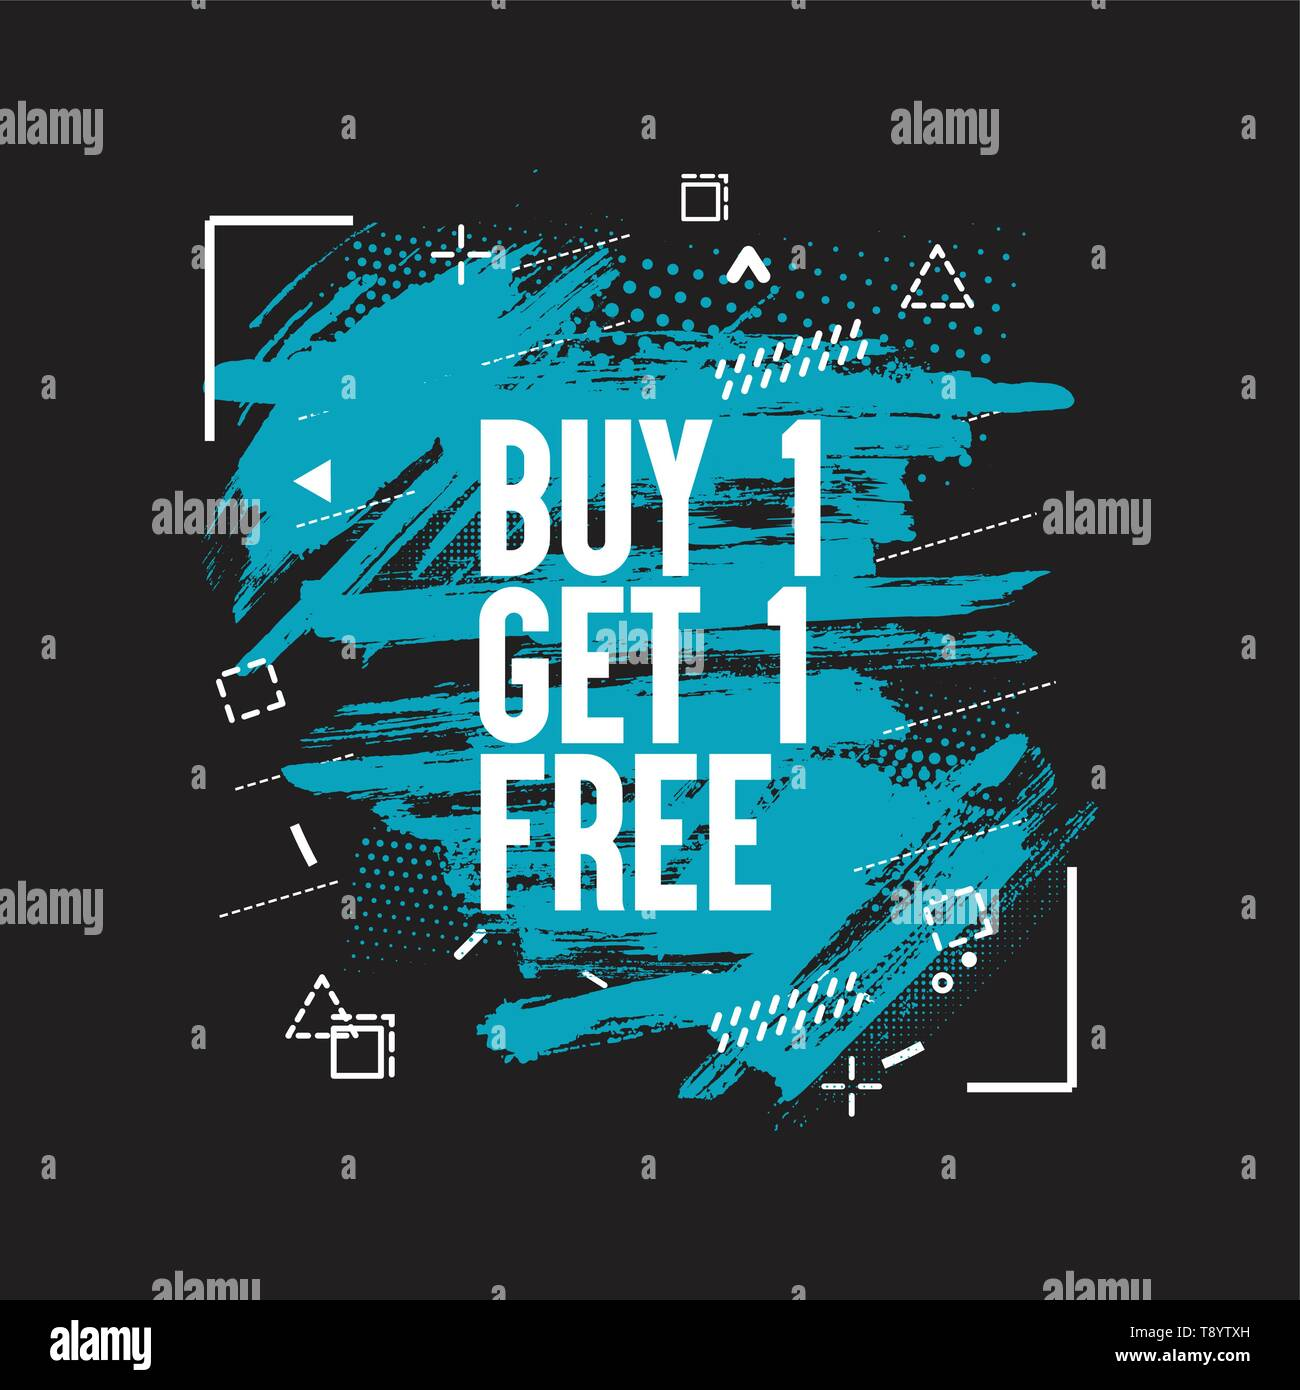 Buy 1 Get 1 Free sale sign over watercolor art brush stroke paint